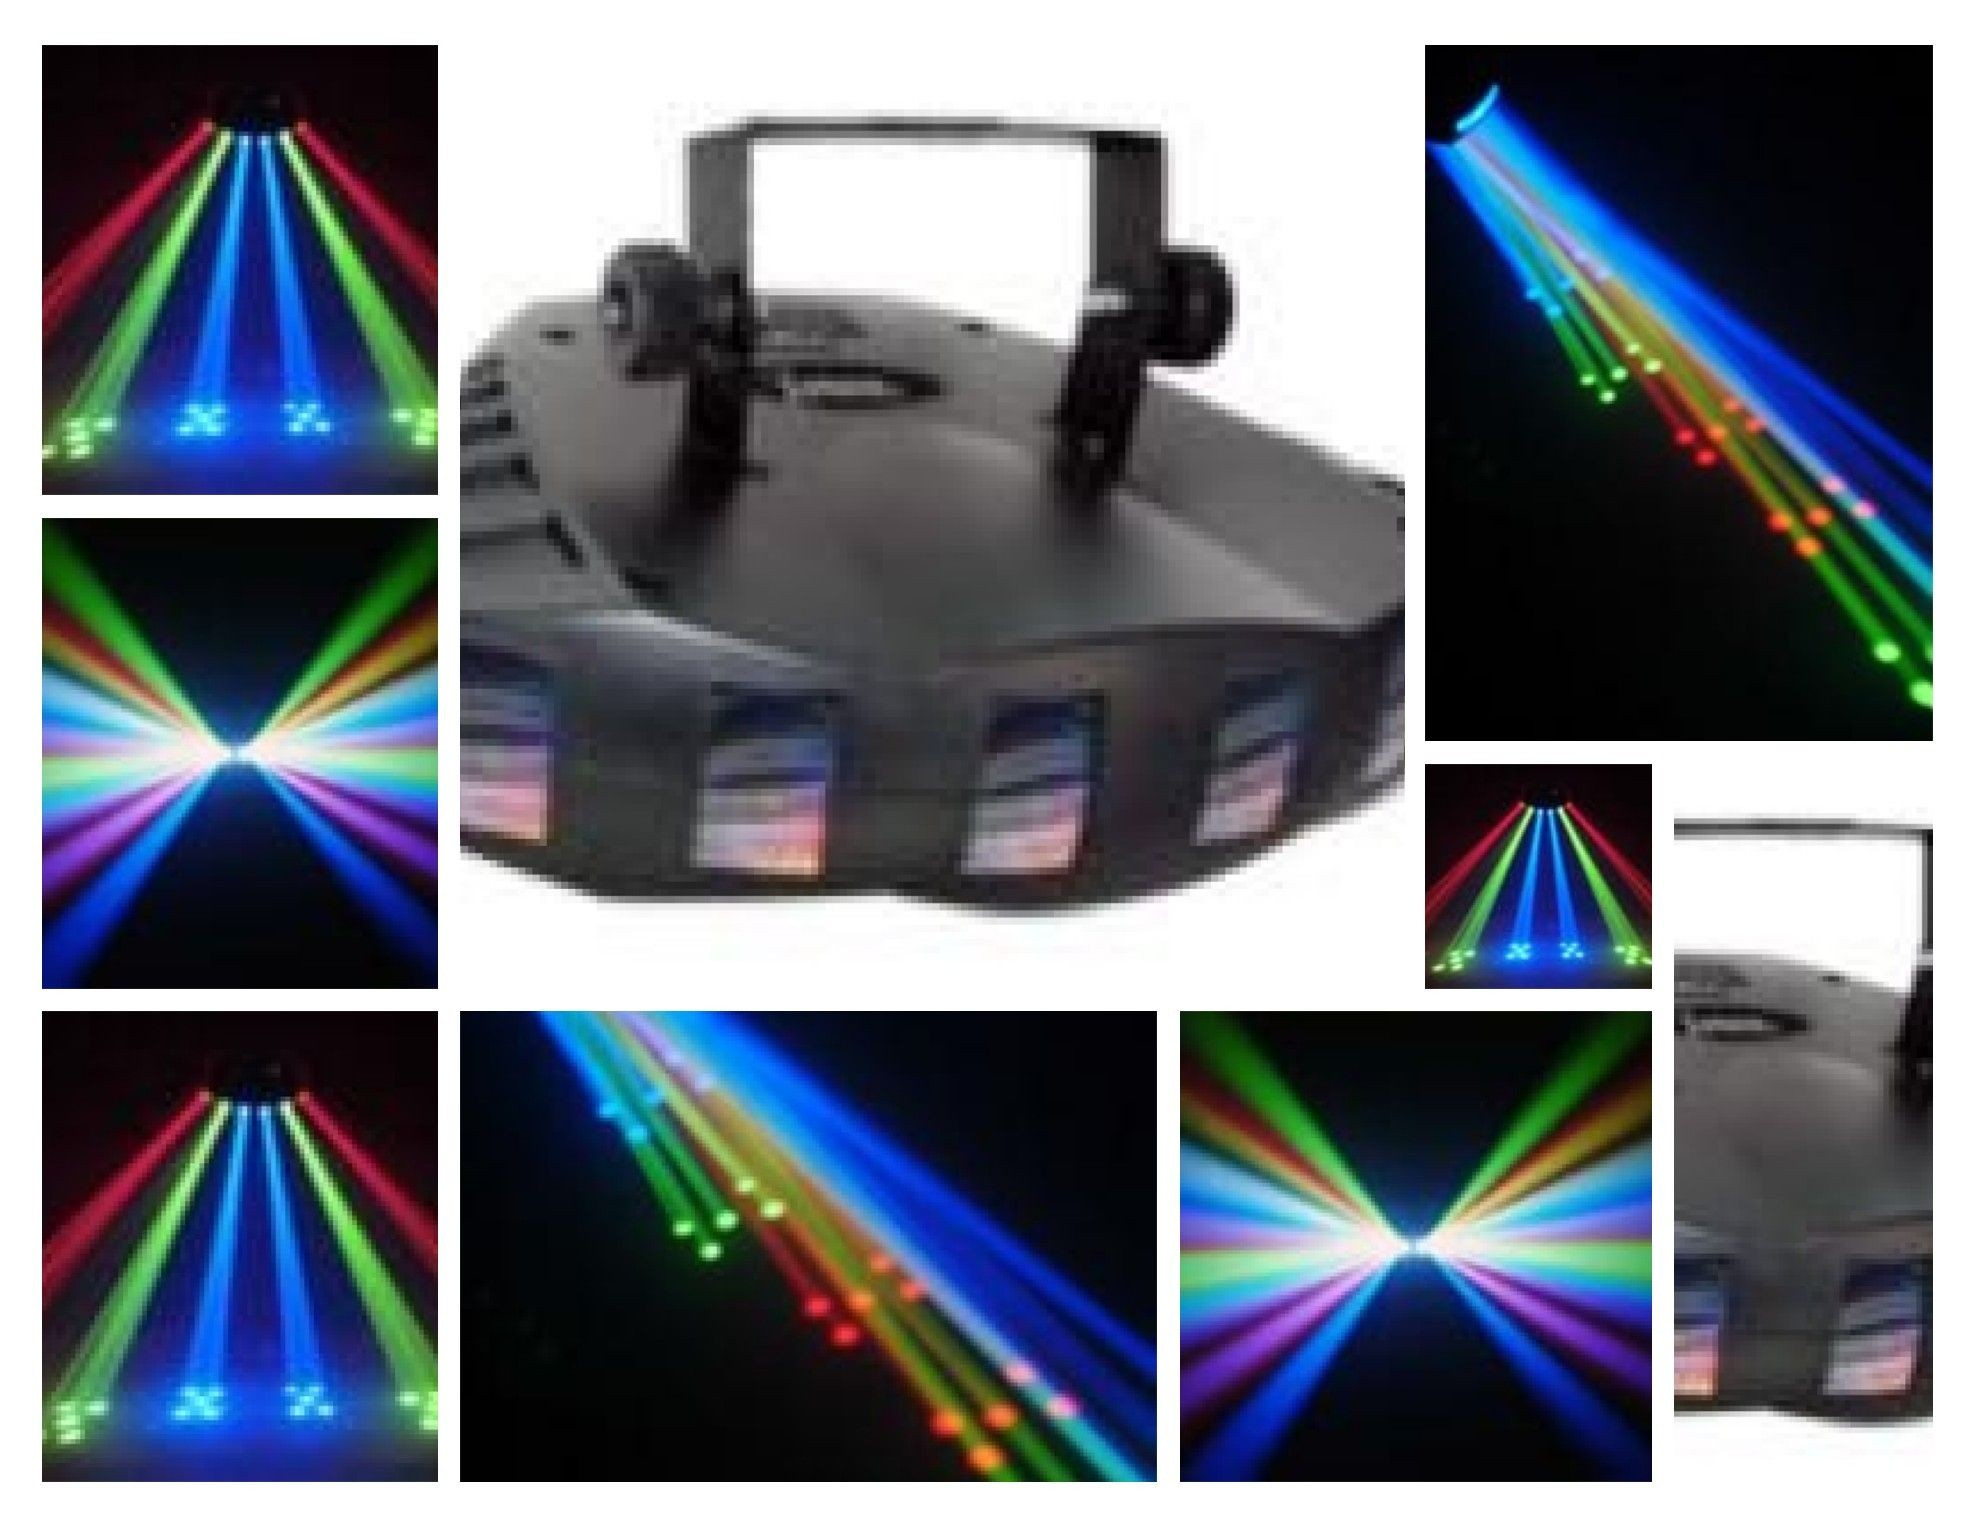 Chauvet MiN RBX Laser ON SPECIAL DJ Mix Club Lasers LED s Lighting and Effects